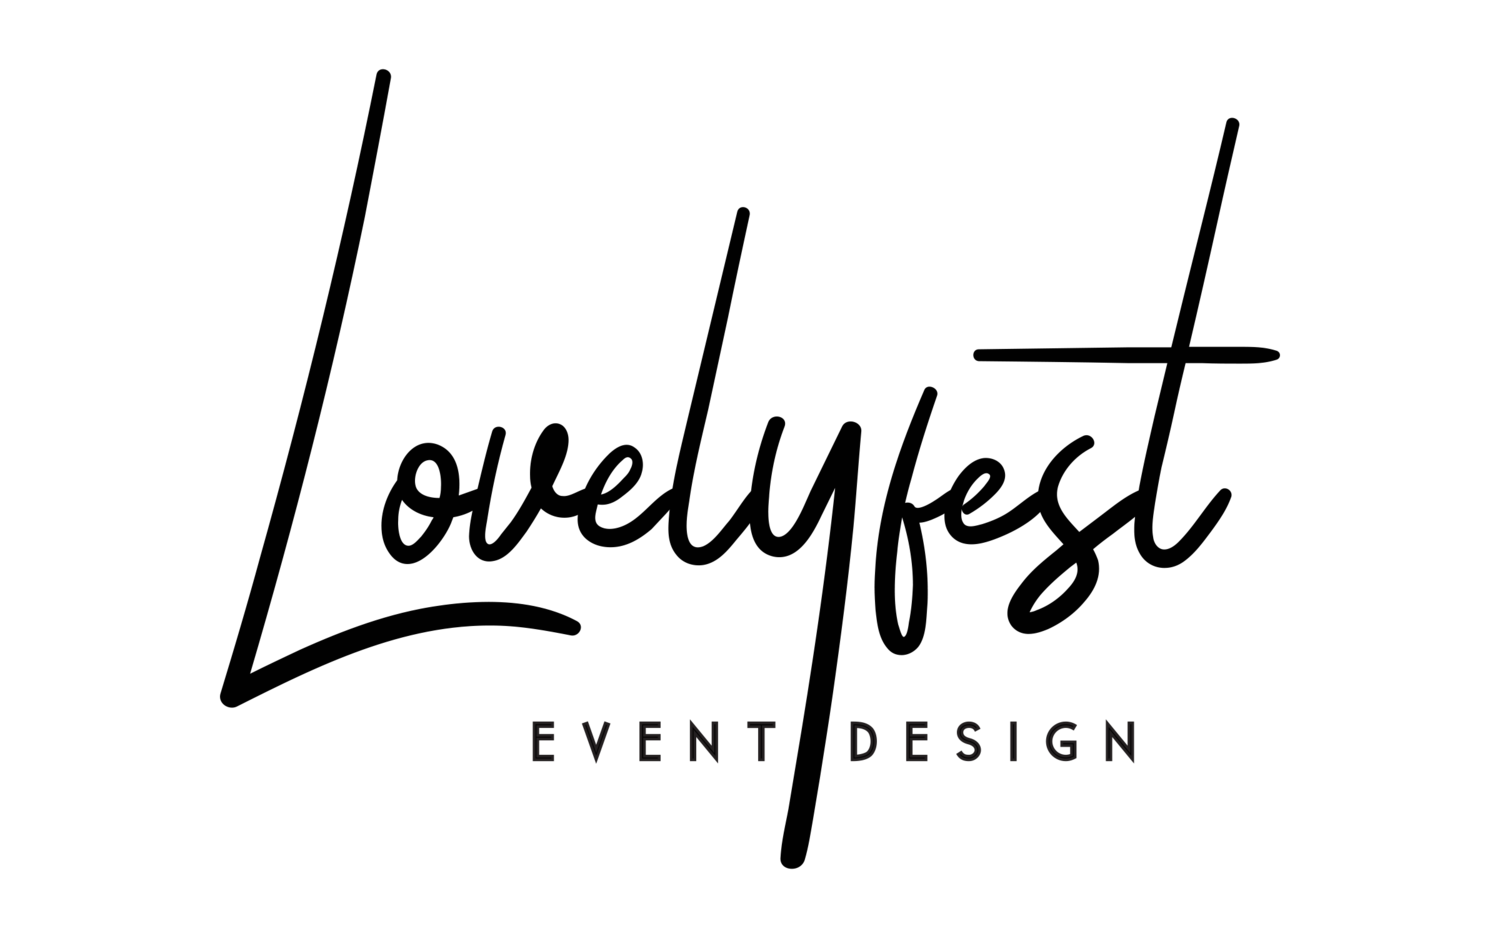 Lovelyfest Event Design